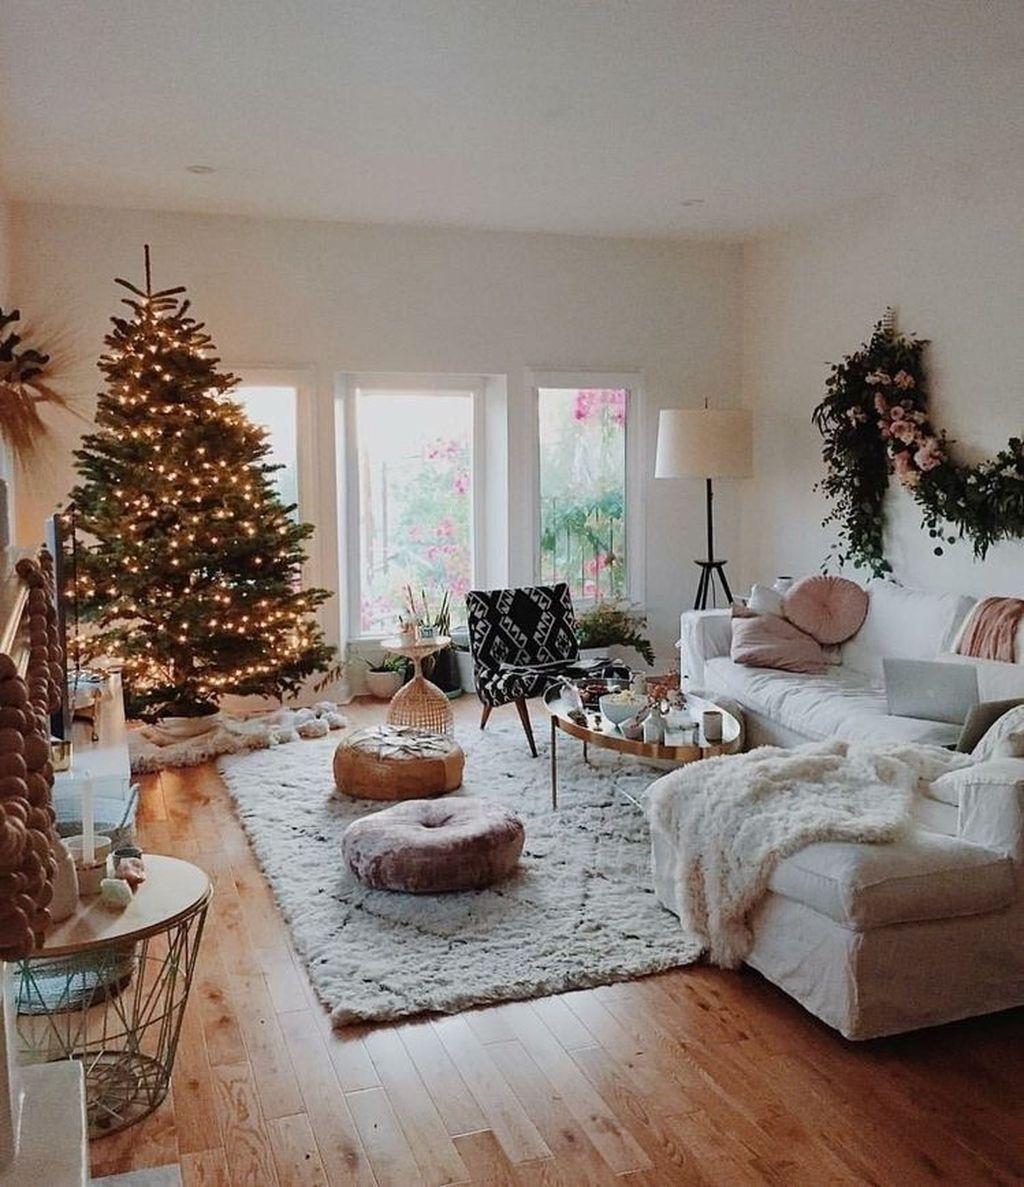 33 Small Apartment Christmas Decor Ideas - #Apartment #christmas #decor #ideas #Small #smallapartmentchristmasdecor